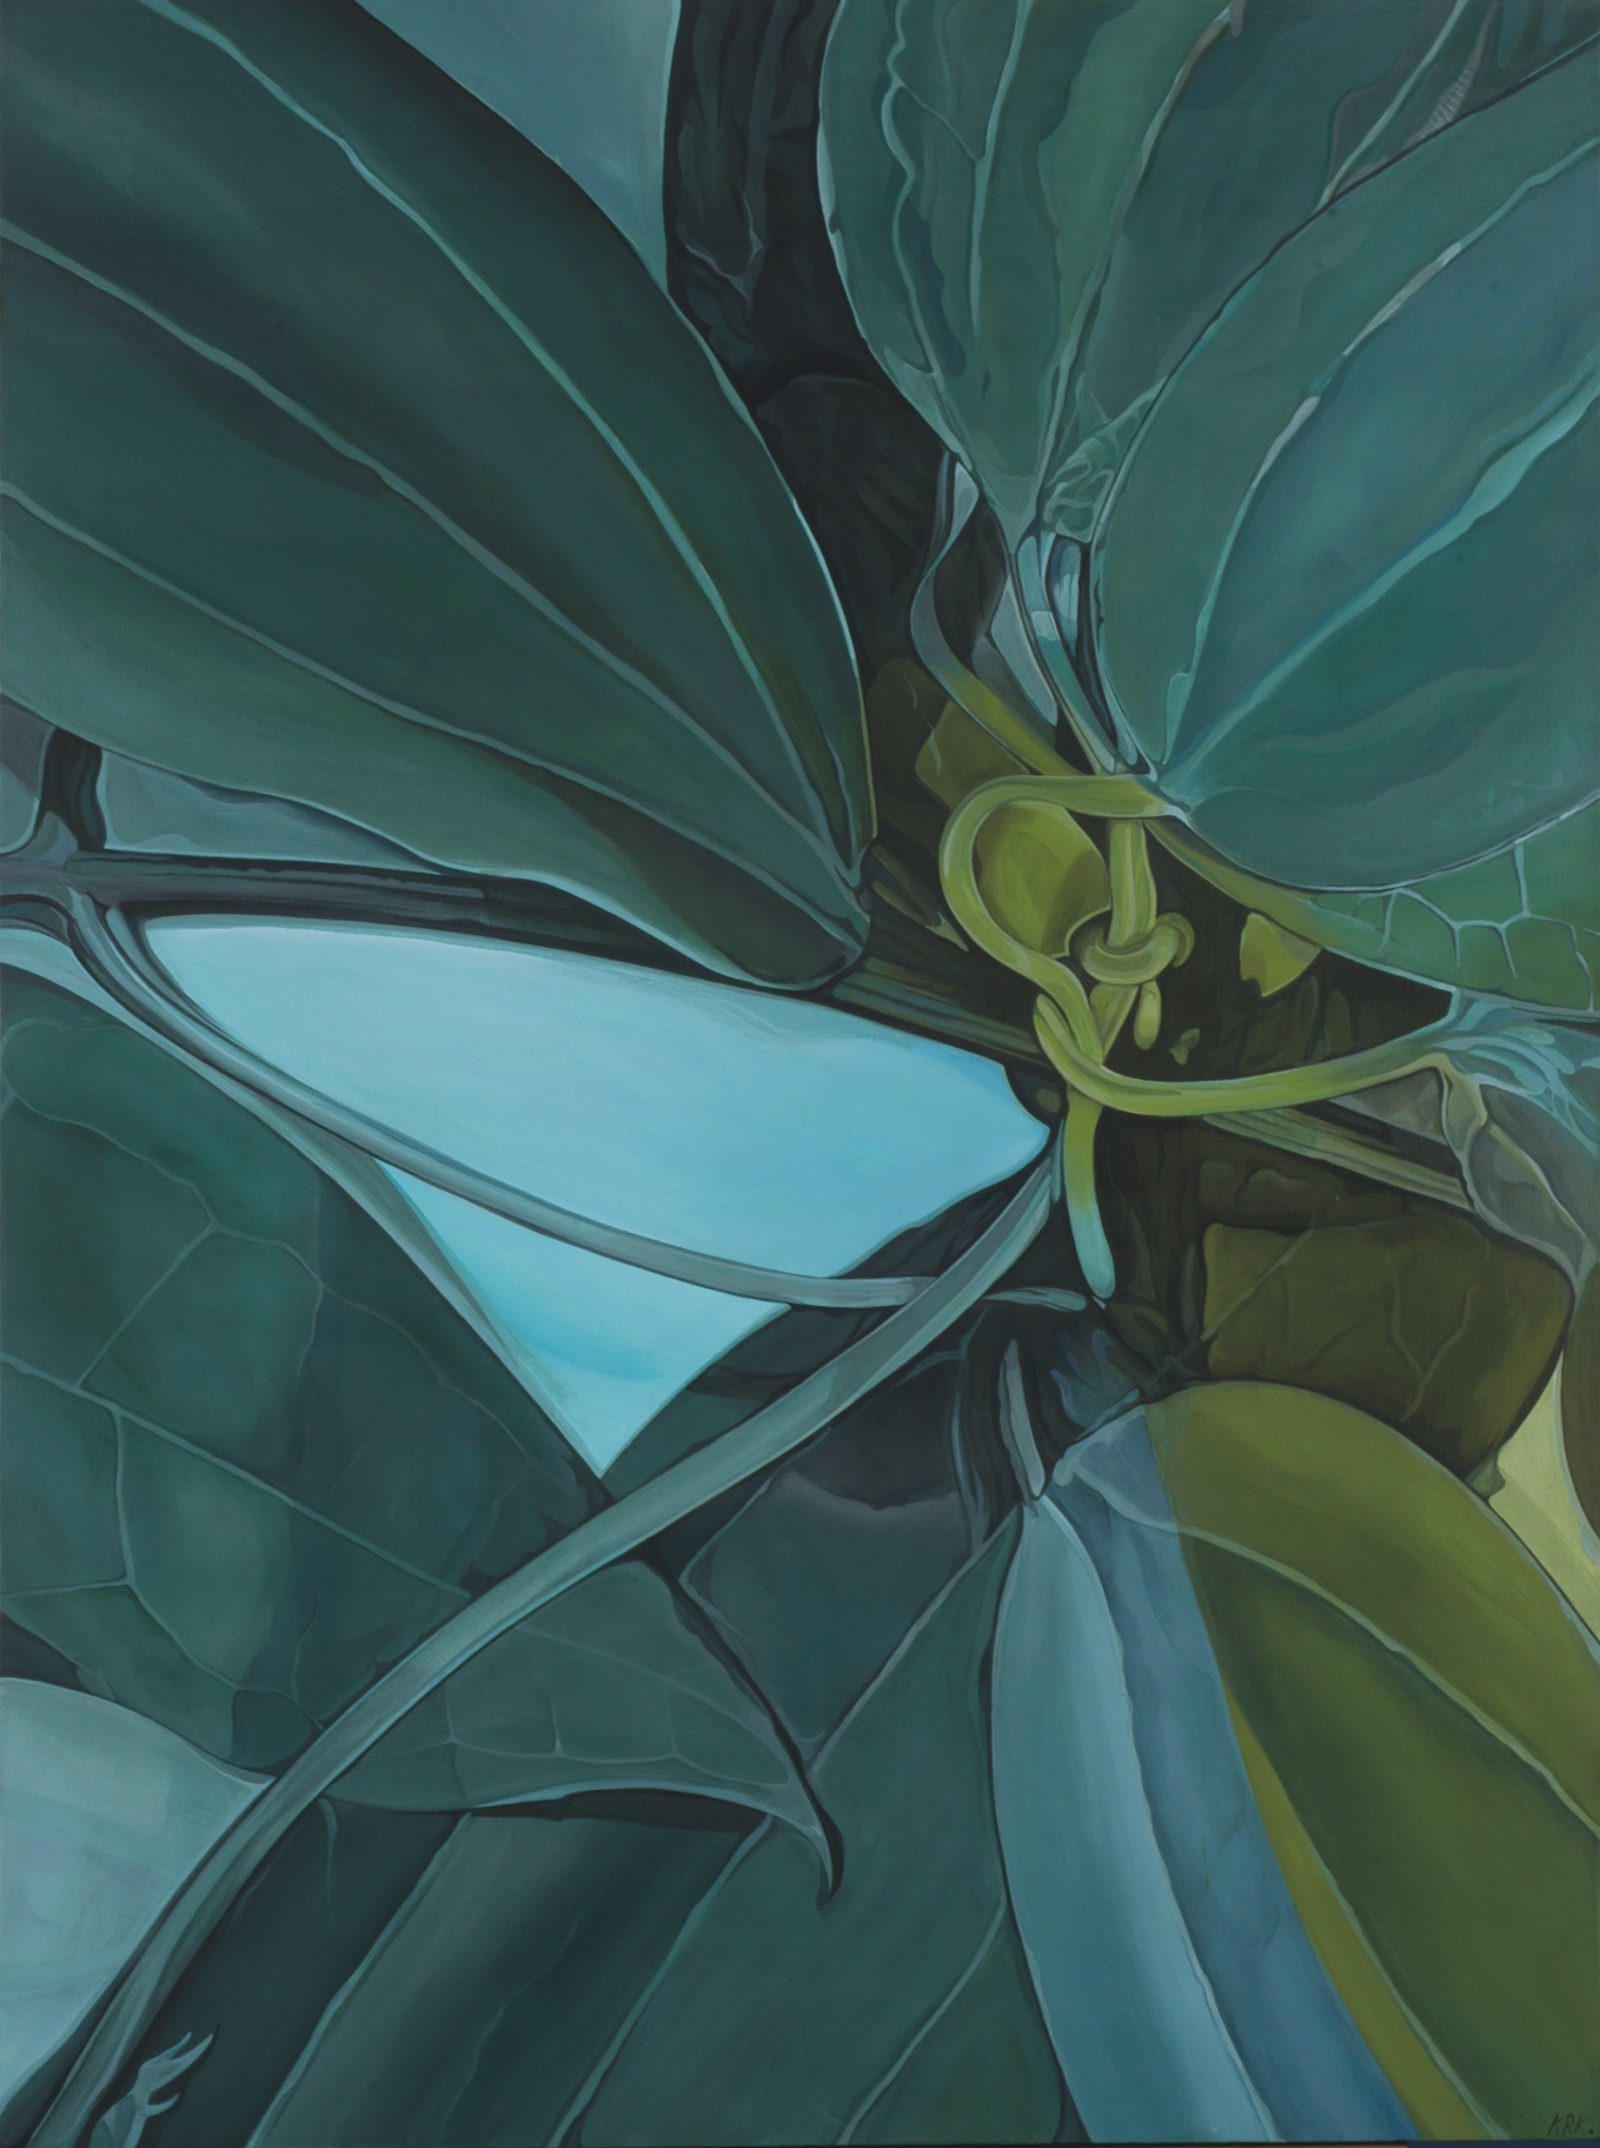 Serpentines Lament artwork by Andrew Killick - art listed for sale on Artplode